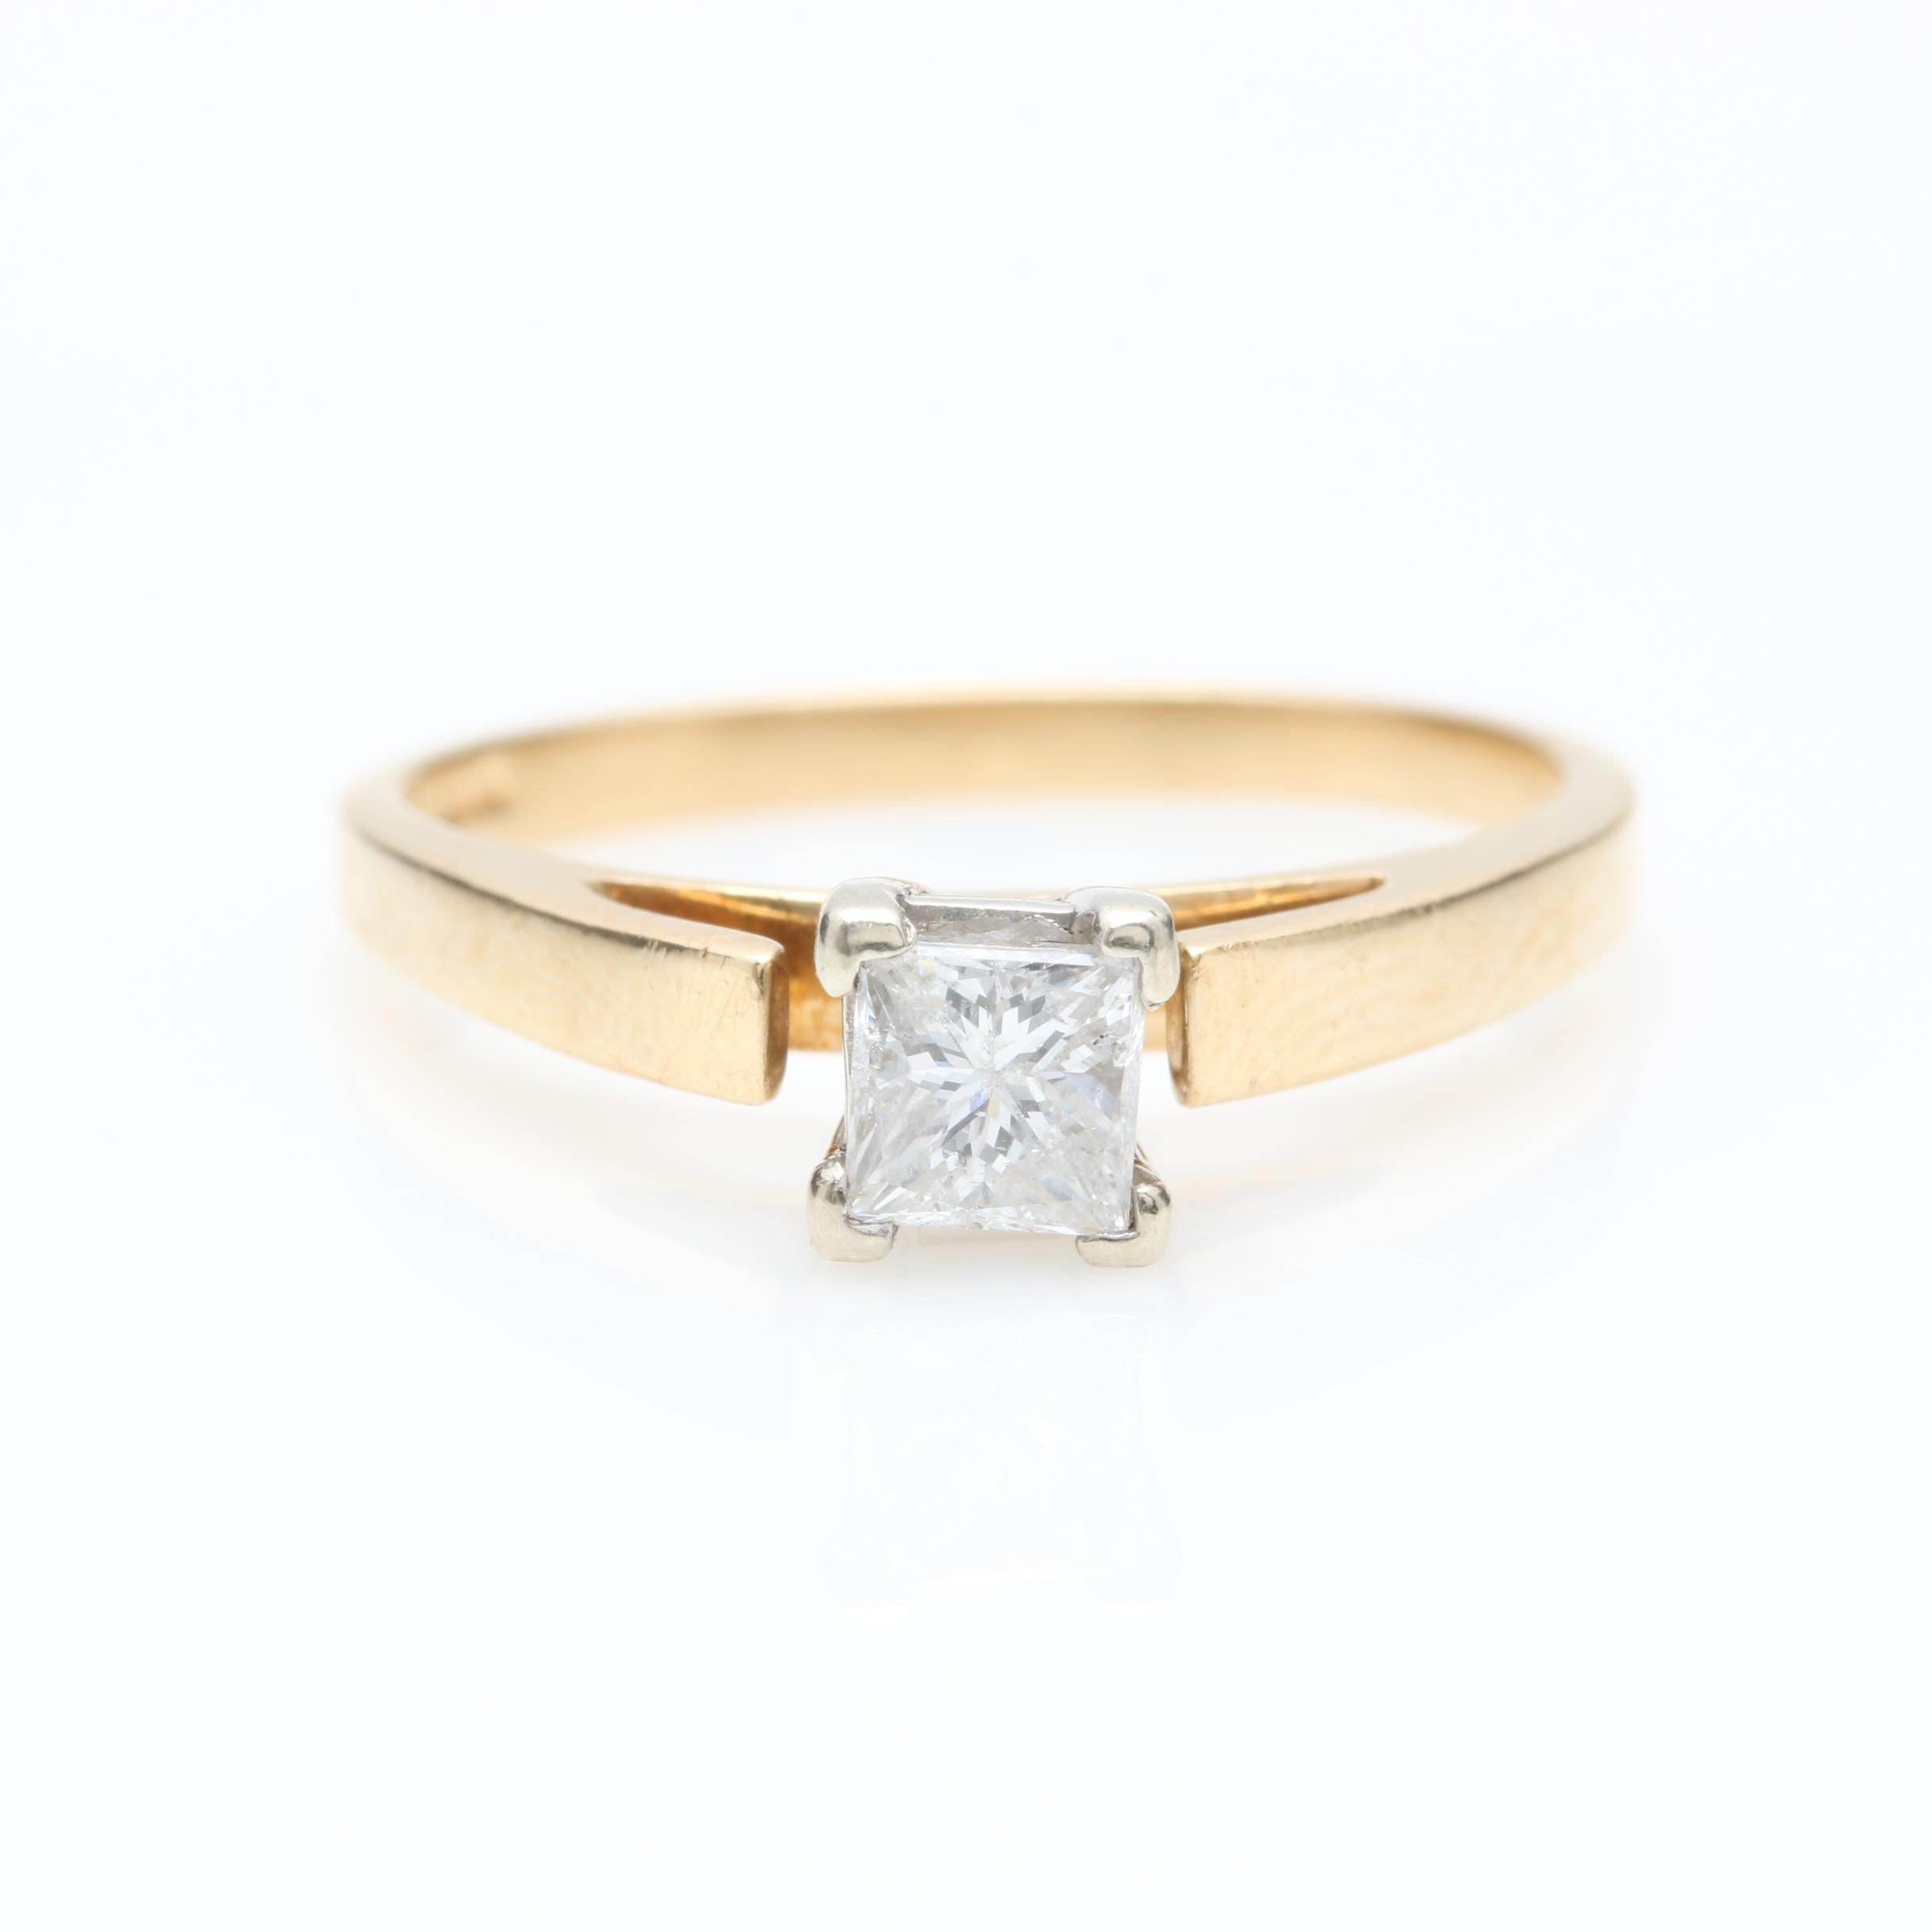 Magic Glo 14K Yellow Gold Diamond Solitaire Ring